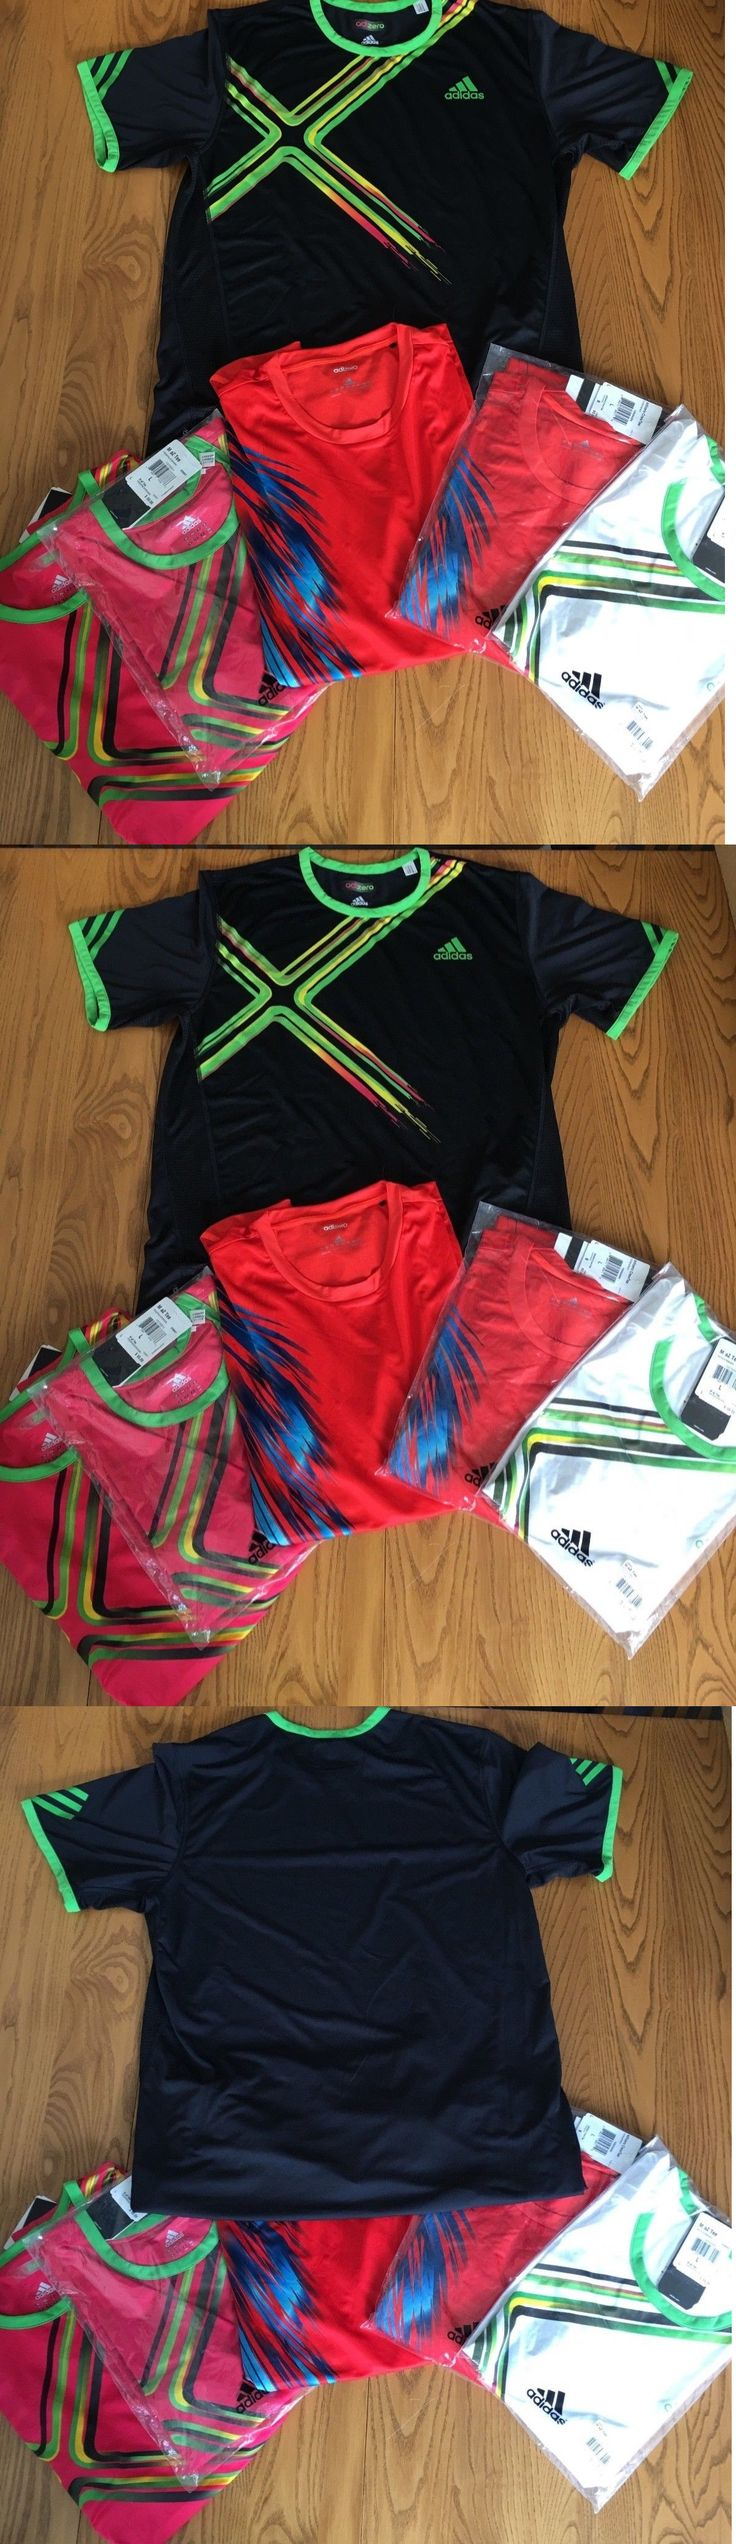 Shirts and Tops 70900: Adidas Adizero (6 Tennis Tops) Men S Shirts -> BUY IT NOW ONLY: $220 on eBay!